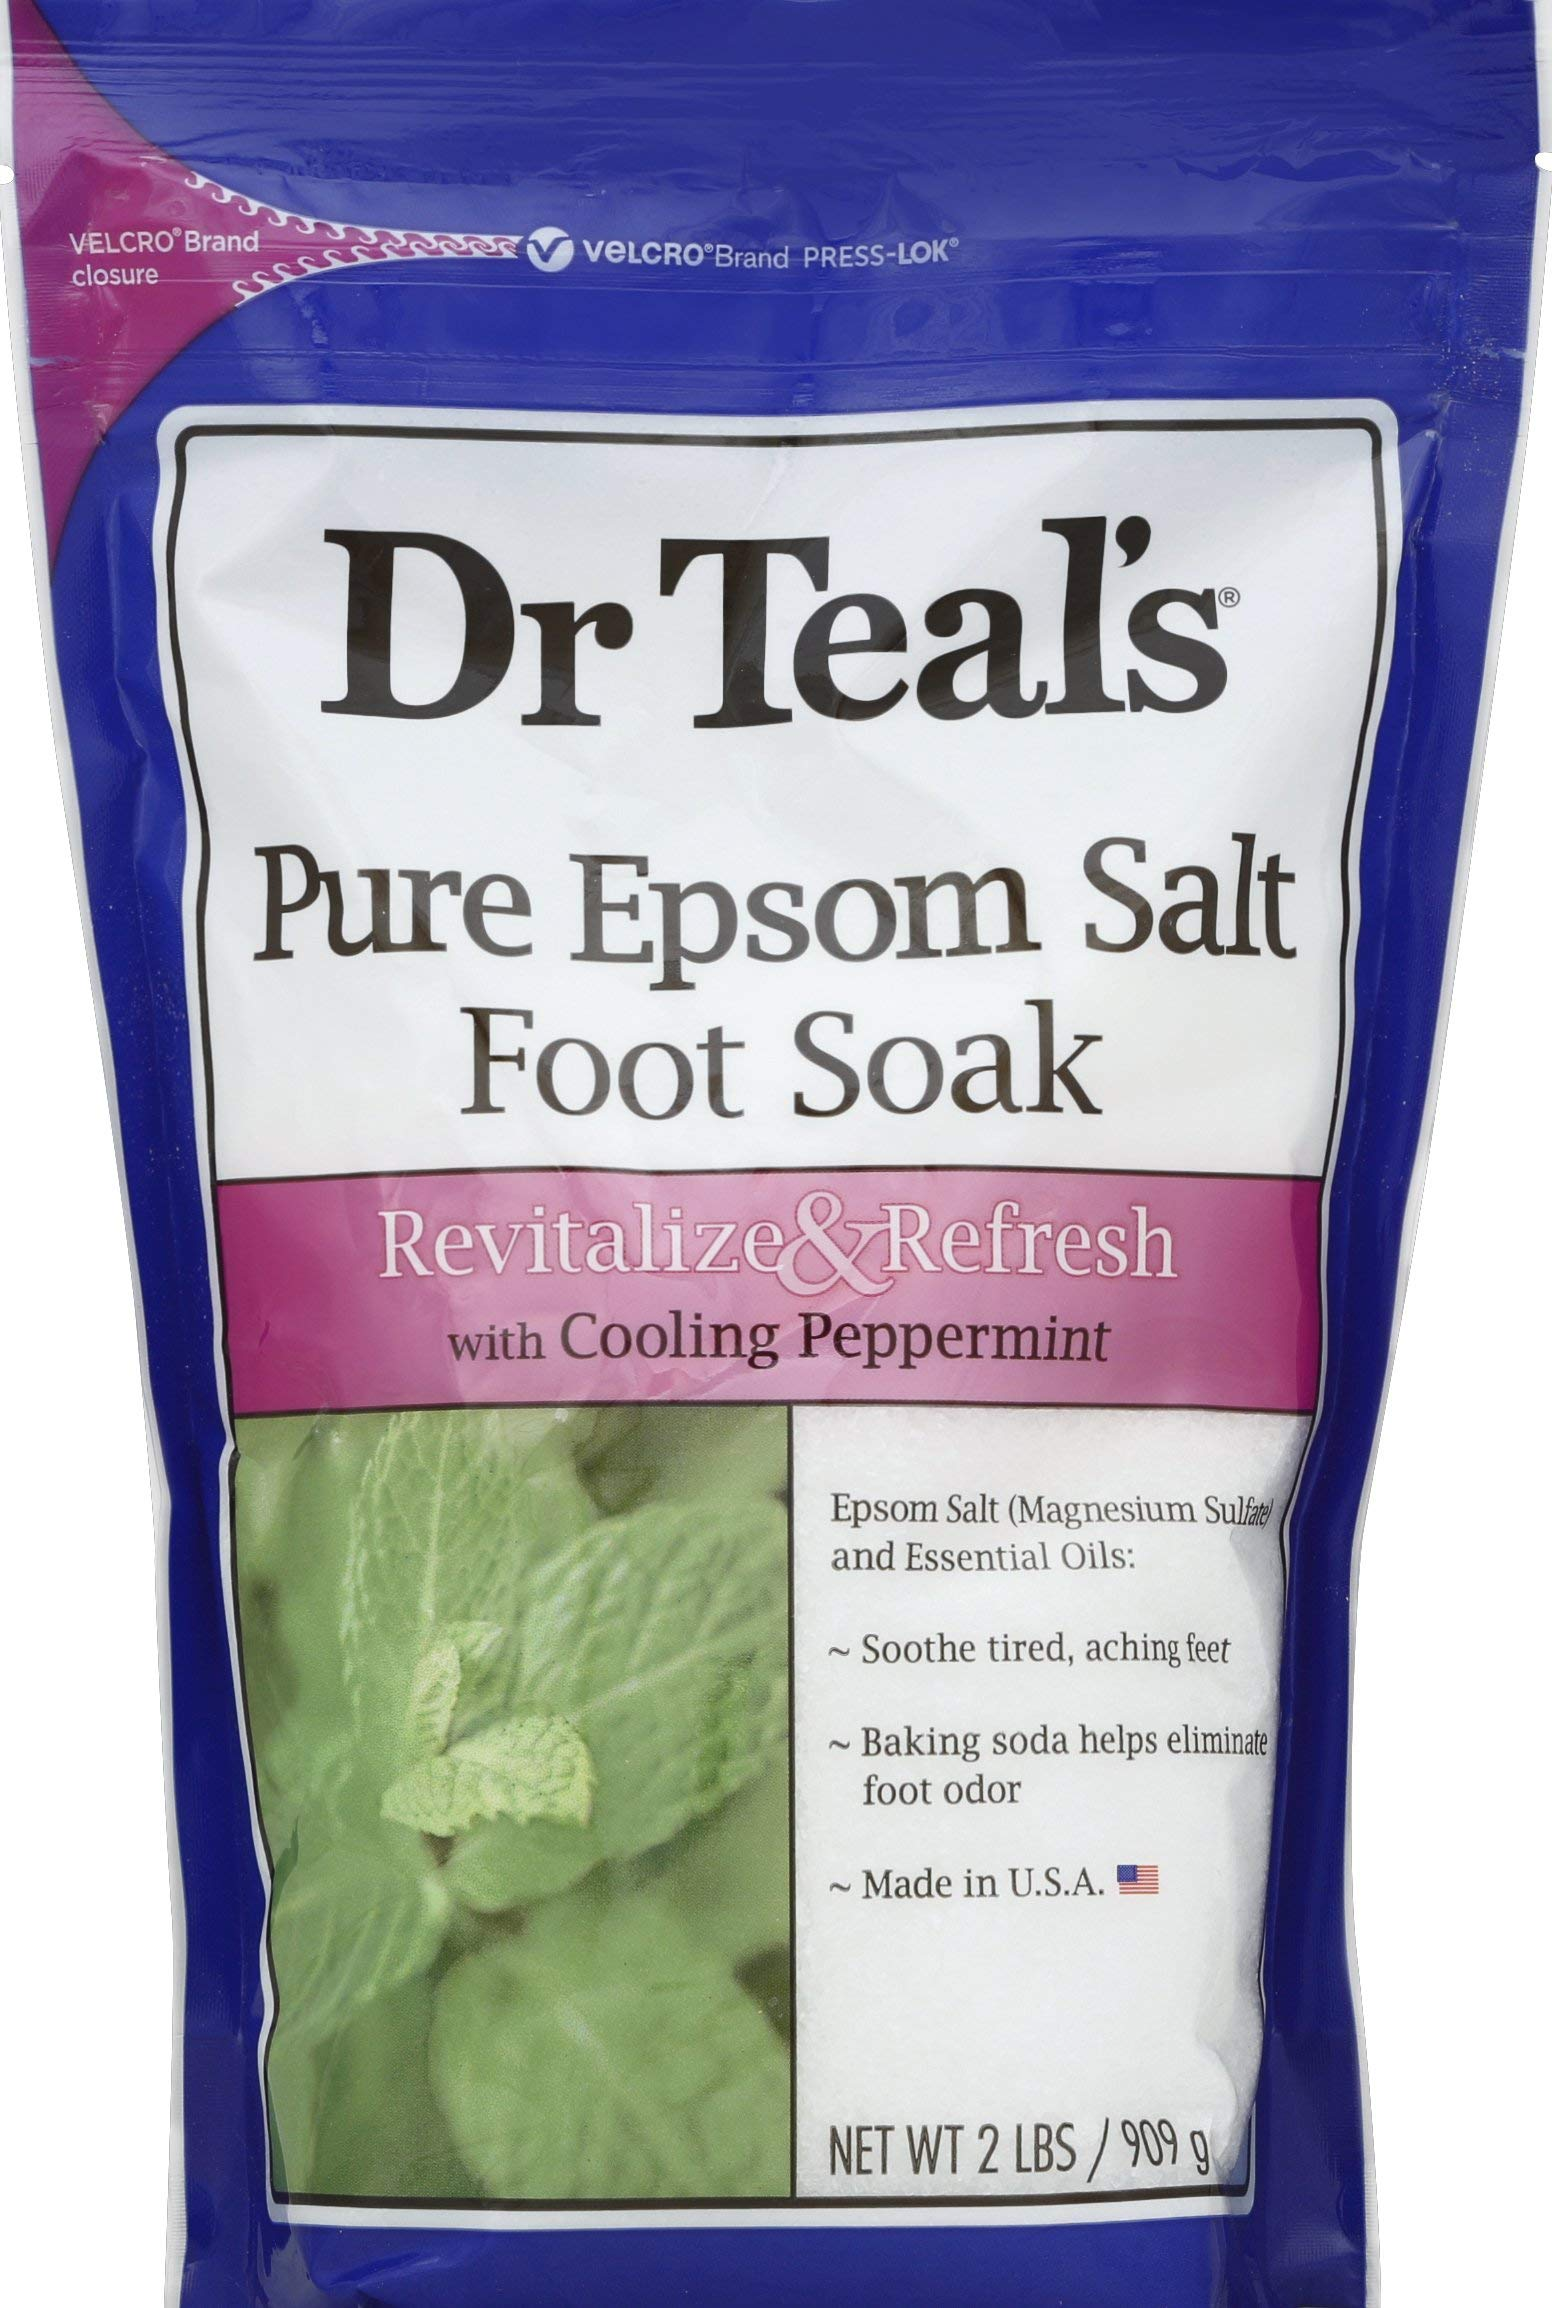 Dr. Teal's Theraupetic Peppermint Foot Soak(Pack of 2) by Dr Teal's